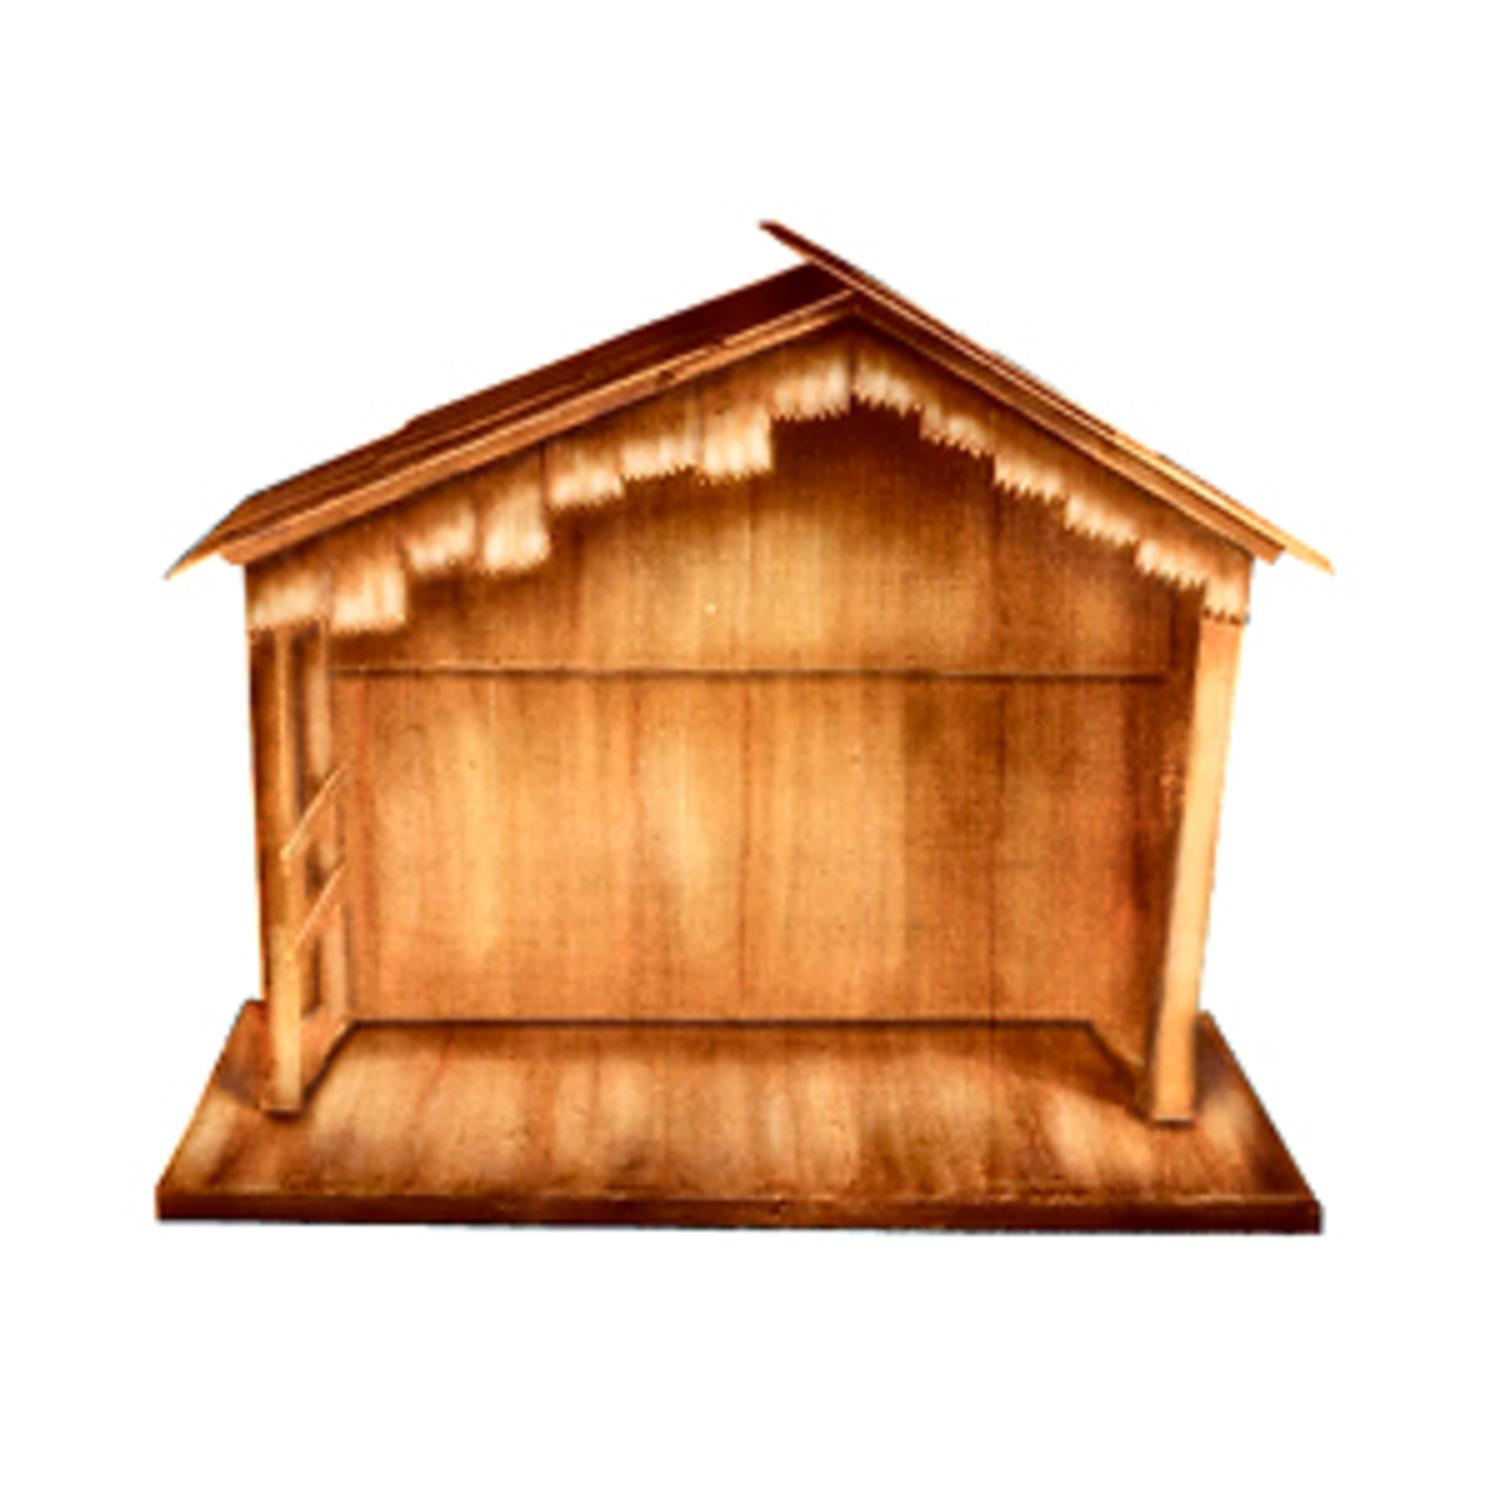 "74"" Large Wooden Outdoor Religious Nativity Stable Christmas Yard Art Decoration"